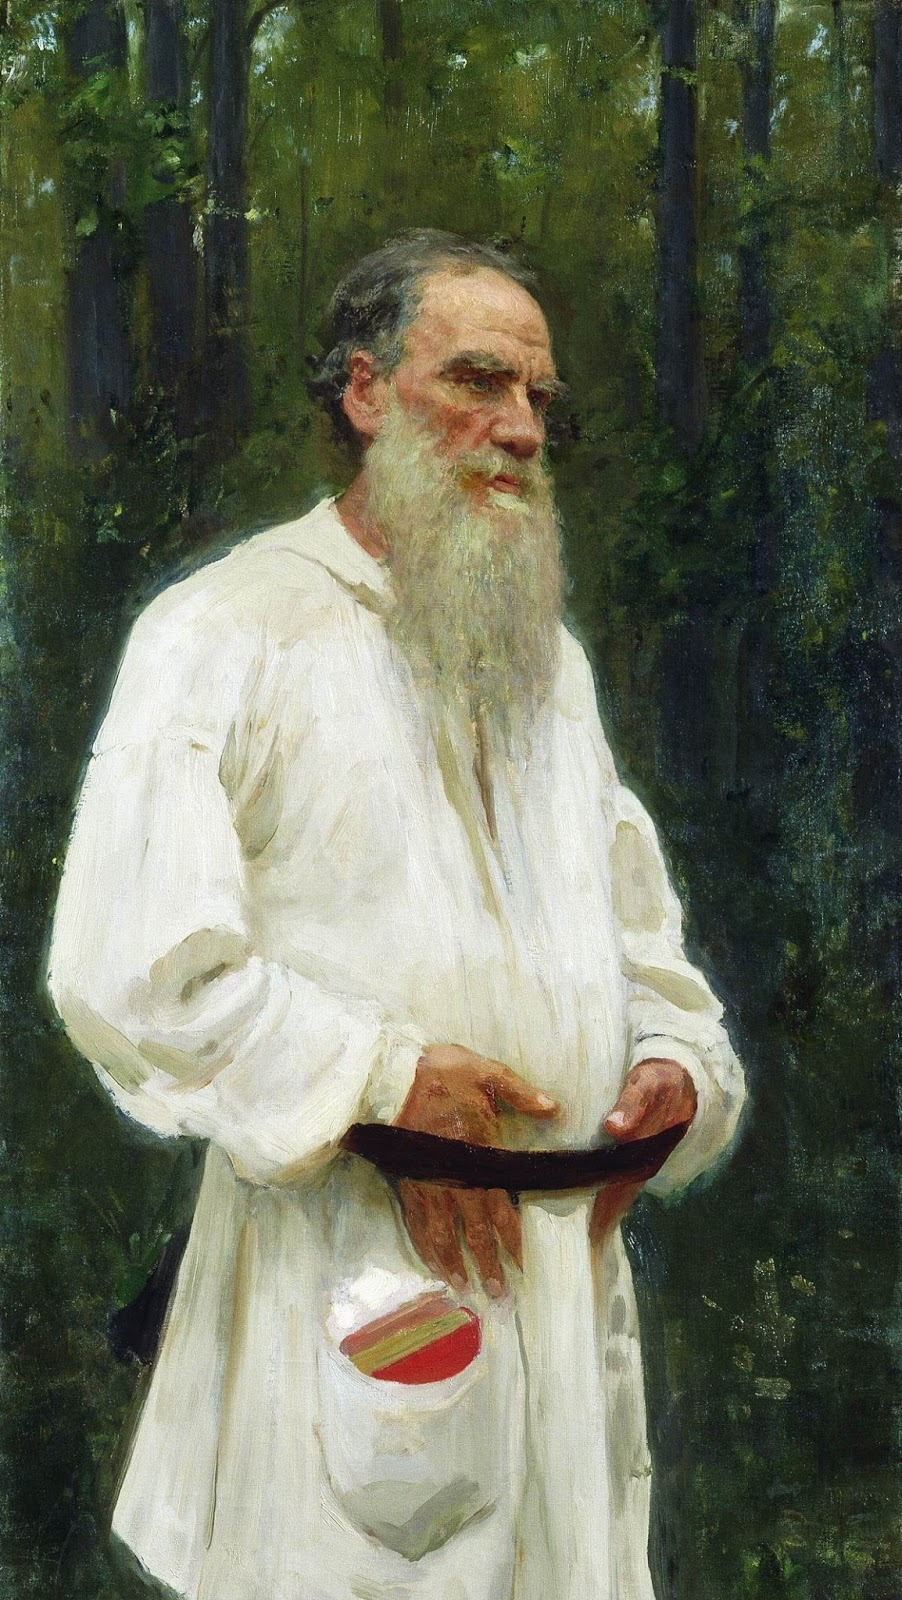 essay on leo tolstoy Essay about tolstoy's what is art 938 words 4 pages leo tolstoy compares art to speech by mentioning that art is a form of communication.